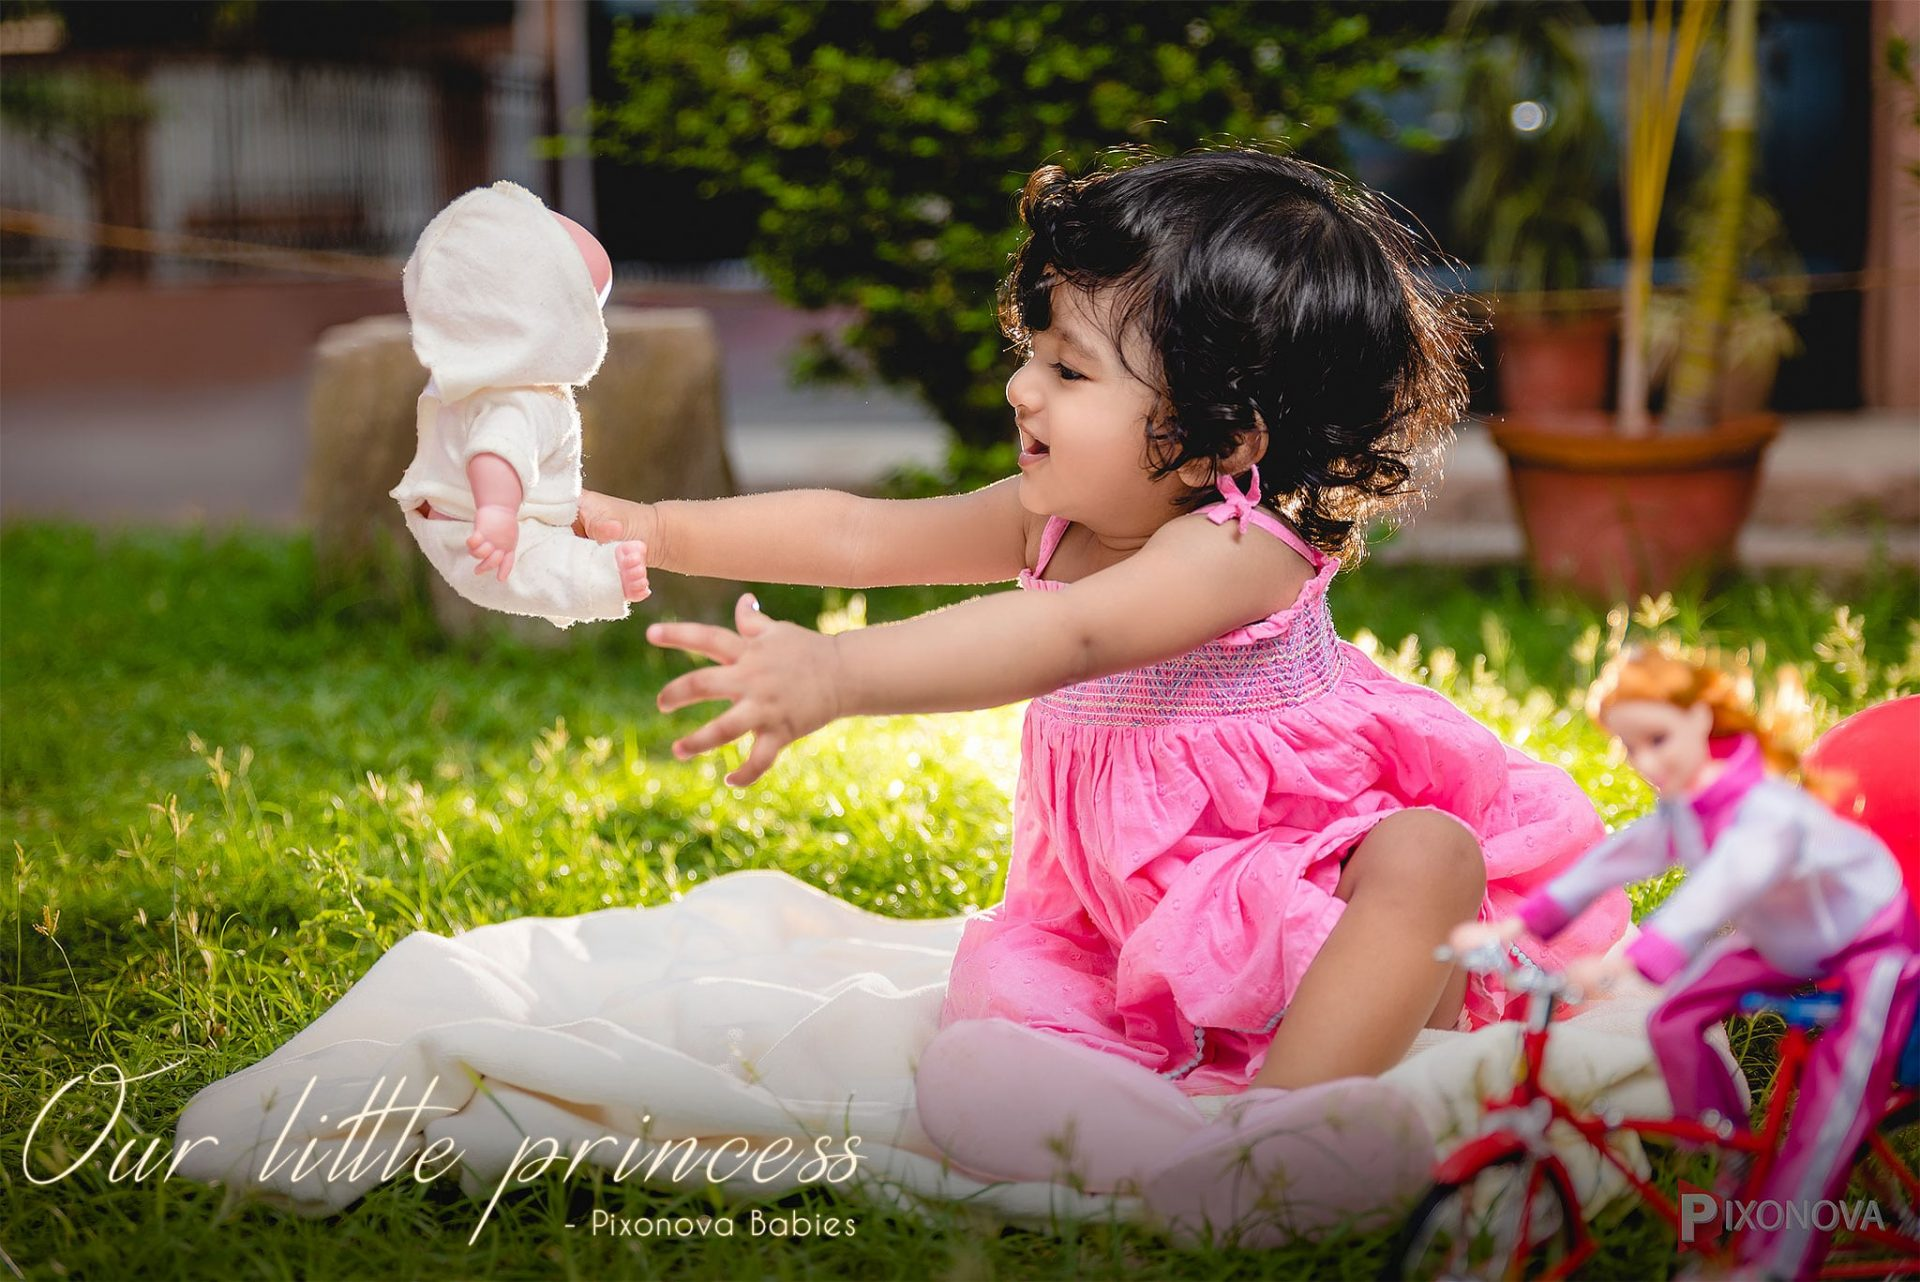 Our little queen - Baby photography by Pixonova Babies